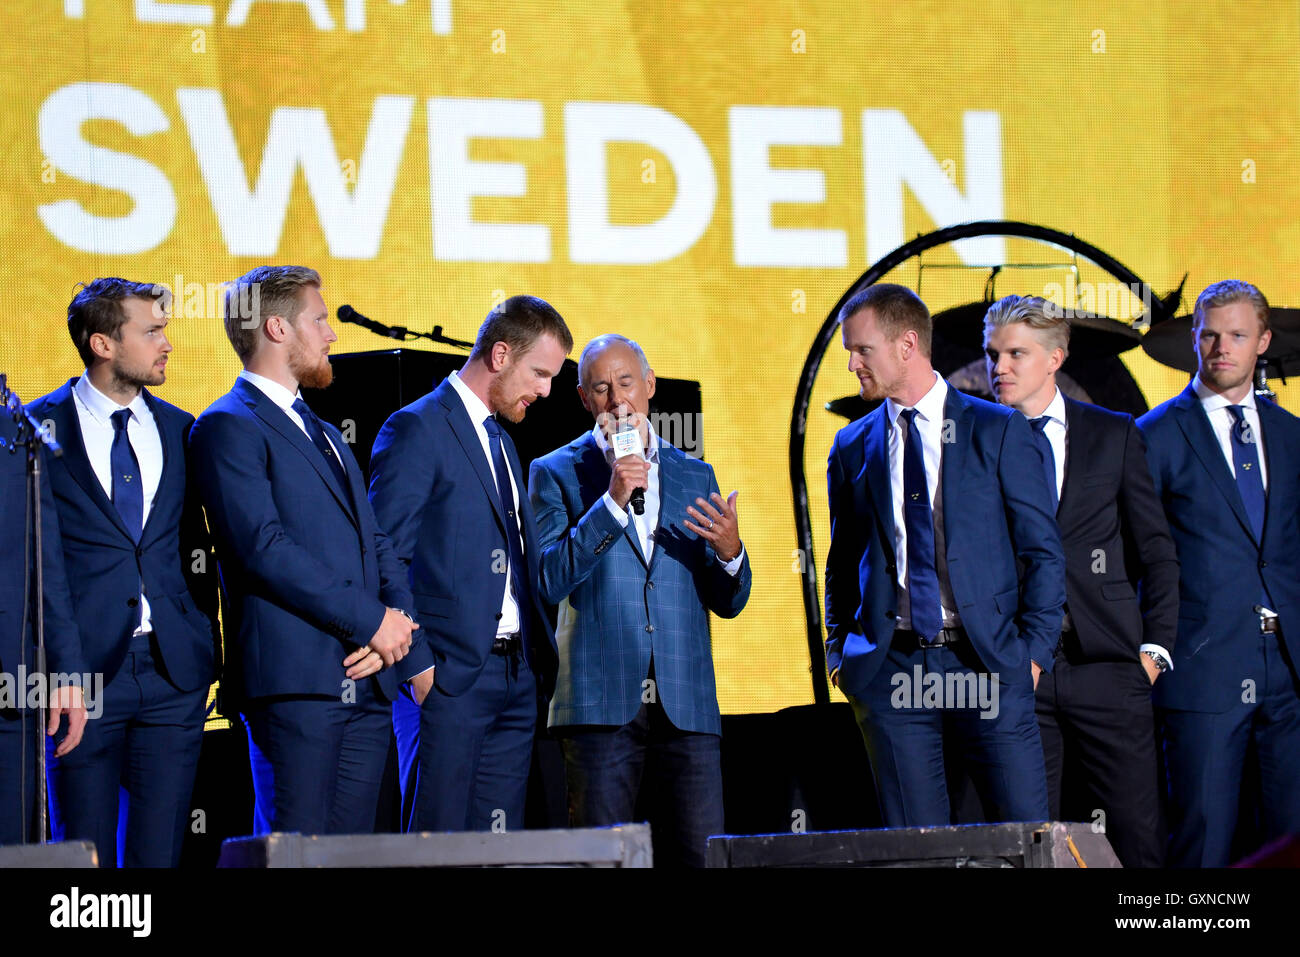 Toronto, Canada - September 16, 2016:  Ron Maclean interviews the Sedin twins of team Sweden at the World Cup of - Stock Image